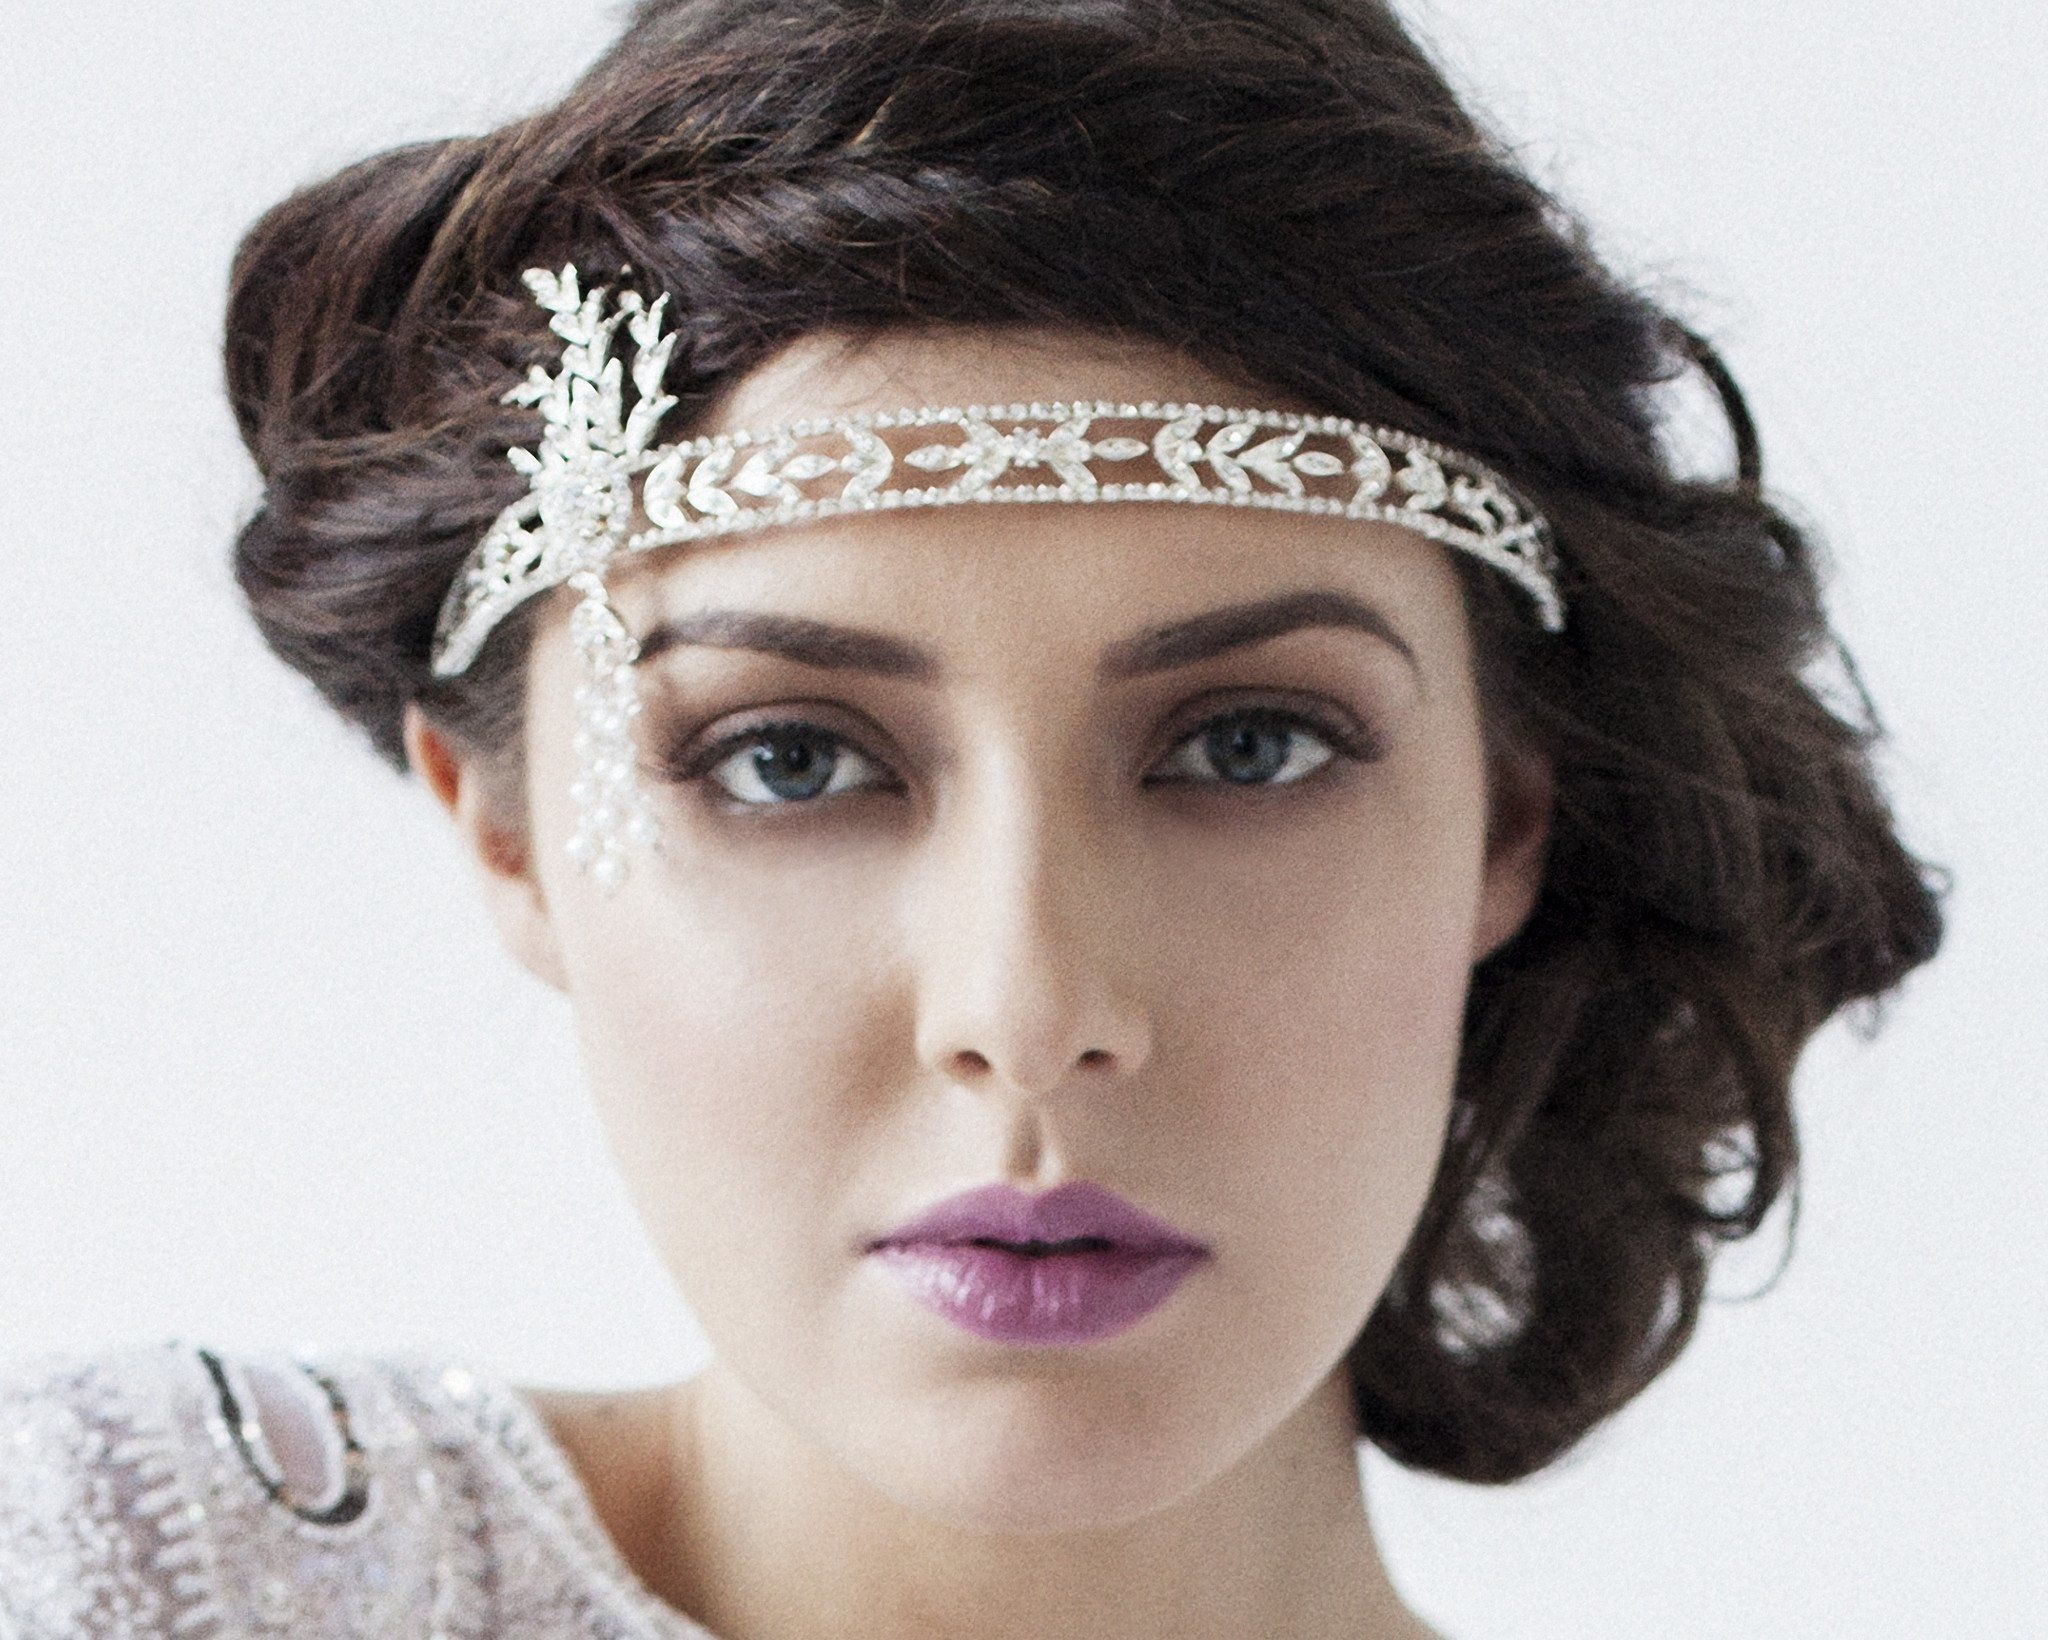 Vintage Side Headpieces - The Buchanan Headpiece/ Brow Band - As Seen On TV Ireland AM